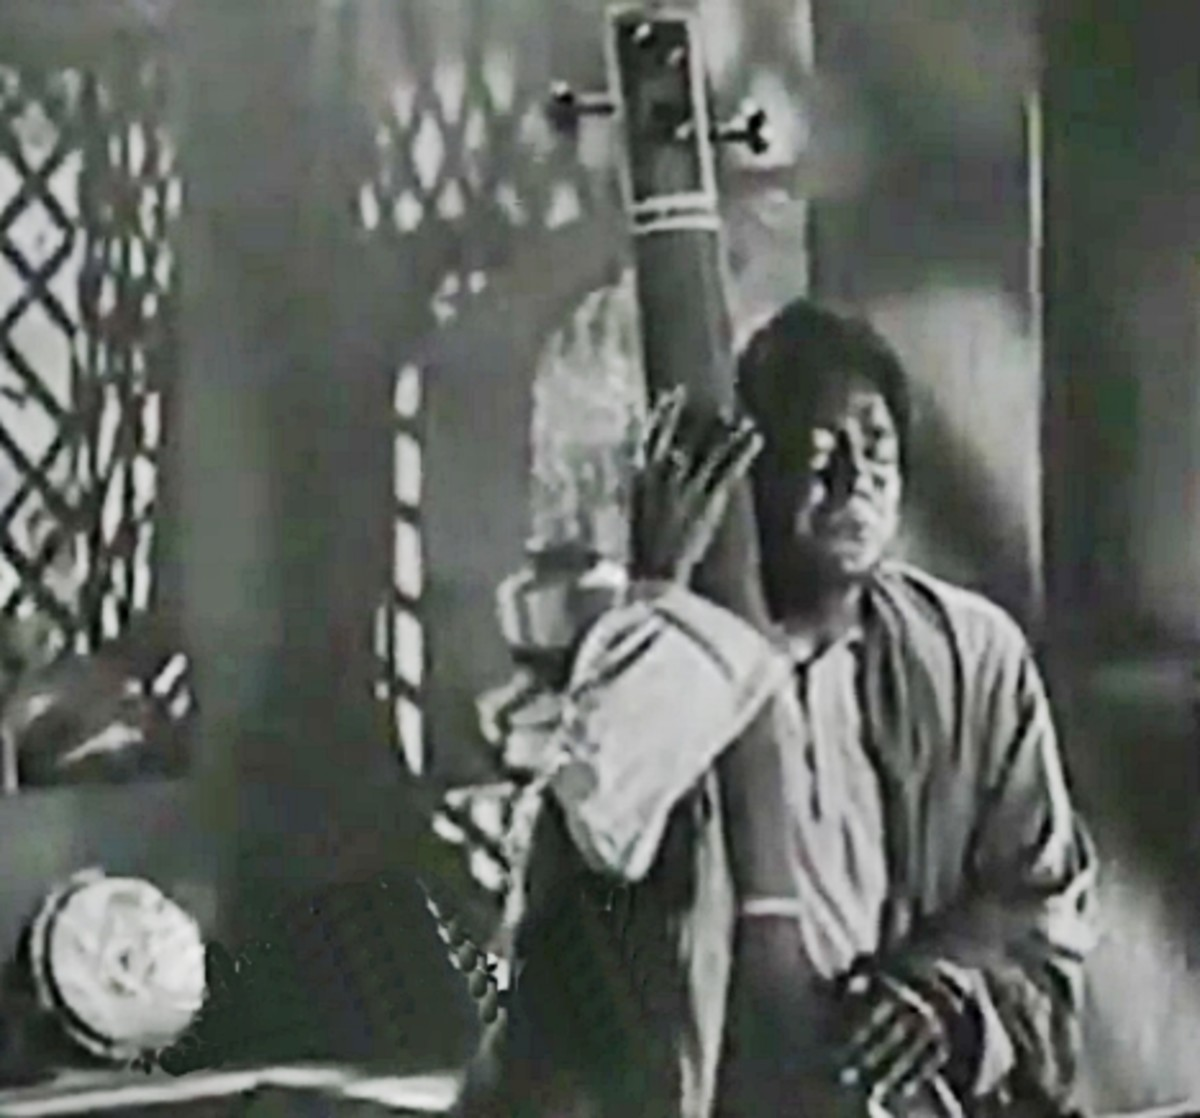 An excellent example of Raag Ahir Bhairav. It has two versions, the first one by S.D. Batish (featured on Kanhaiya Lal) followed by the main version featured on Ashok Kumar.